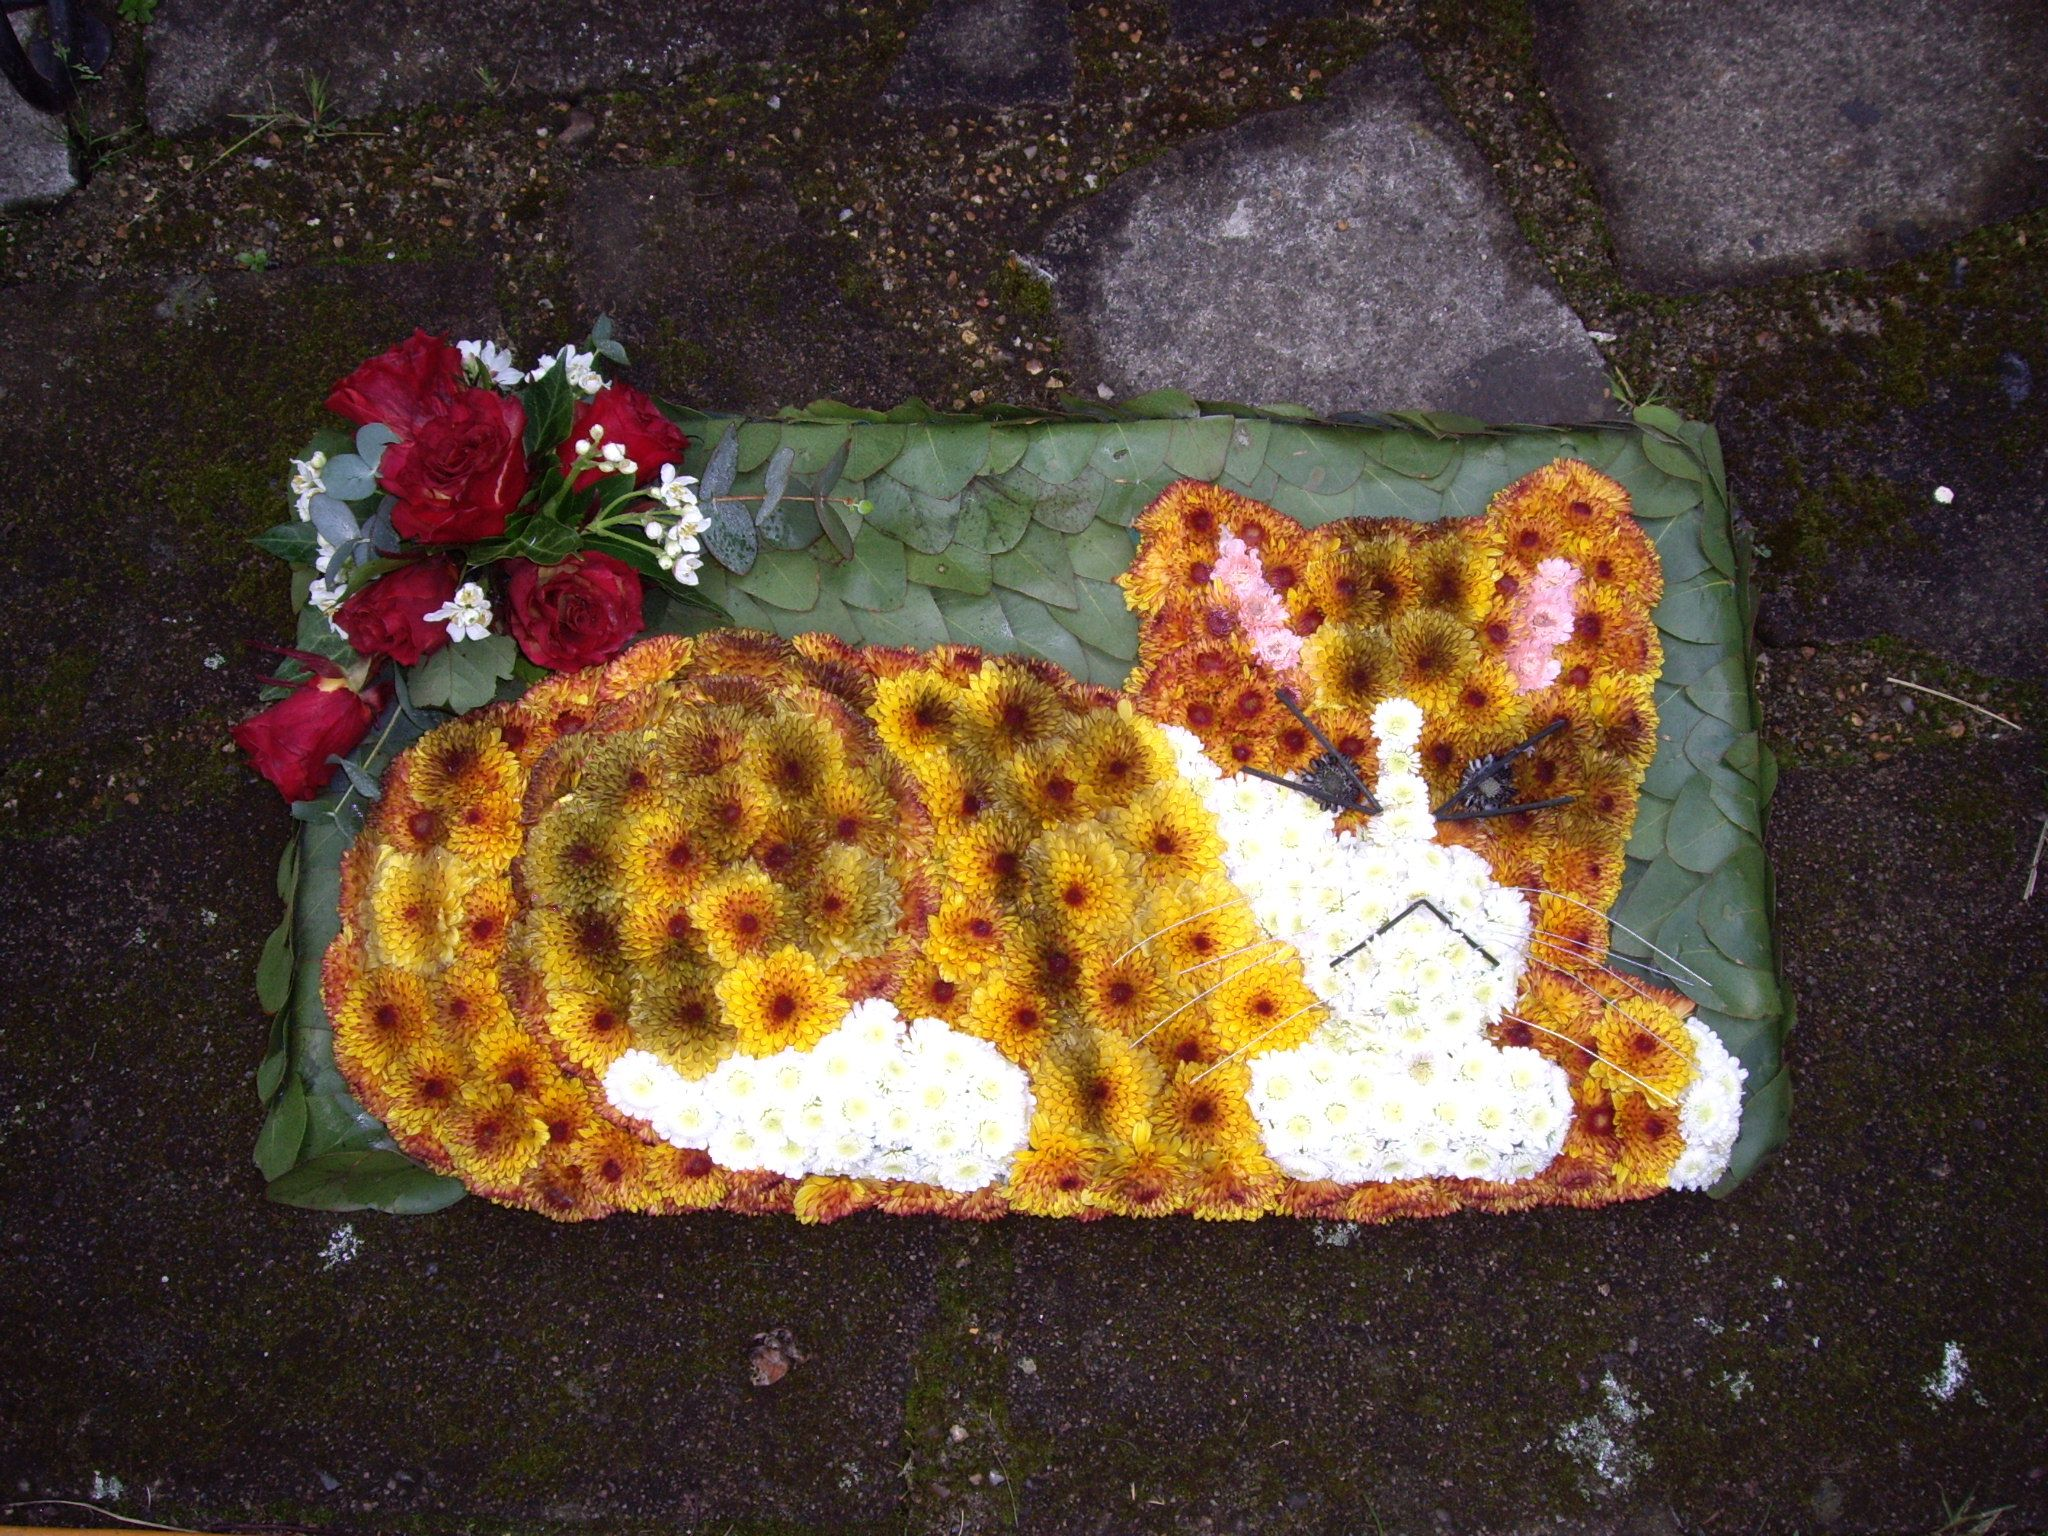 Floral cat sympathy flowers pinterest west london west london flowers specialise in stunning wedding flowers bespoke funeral flowers and flowers for any occasion with over 20 years experience izmirmasajfo Images